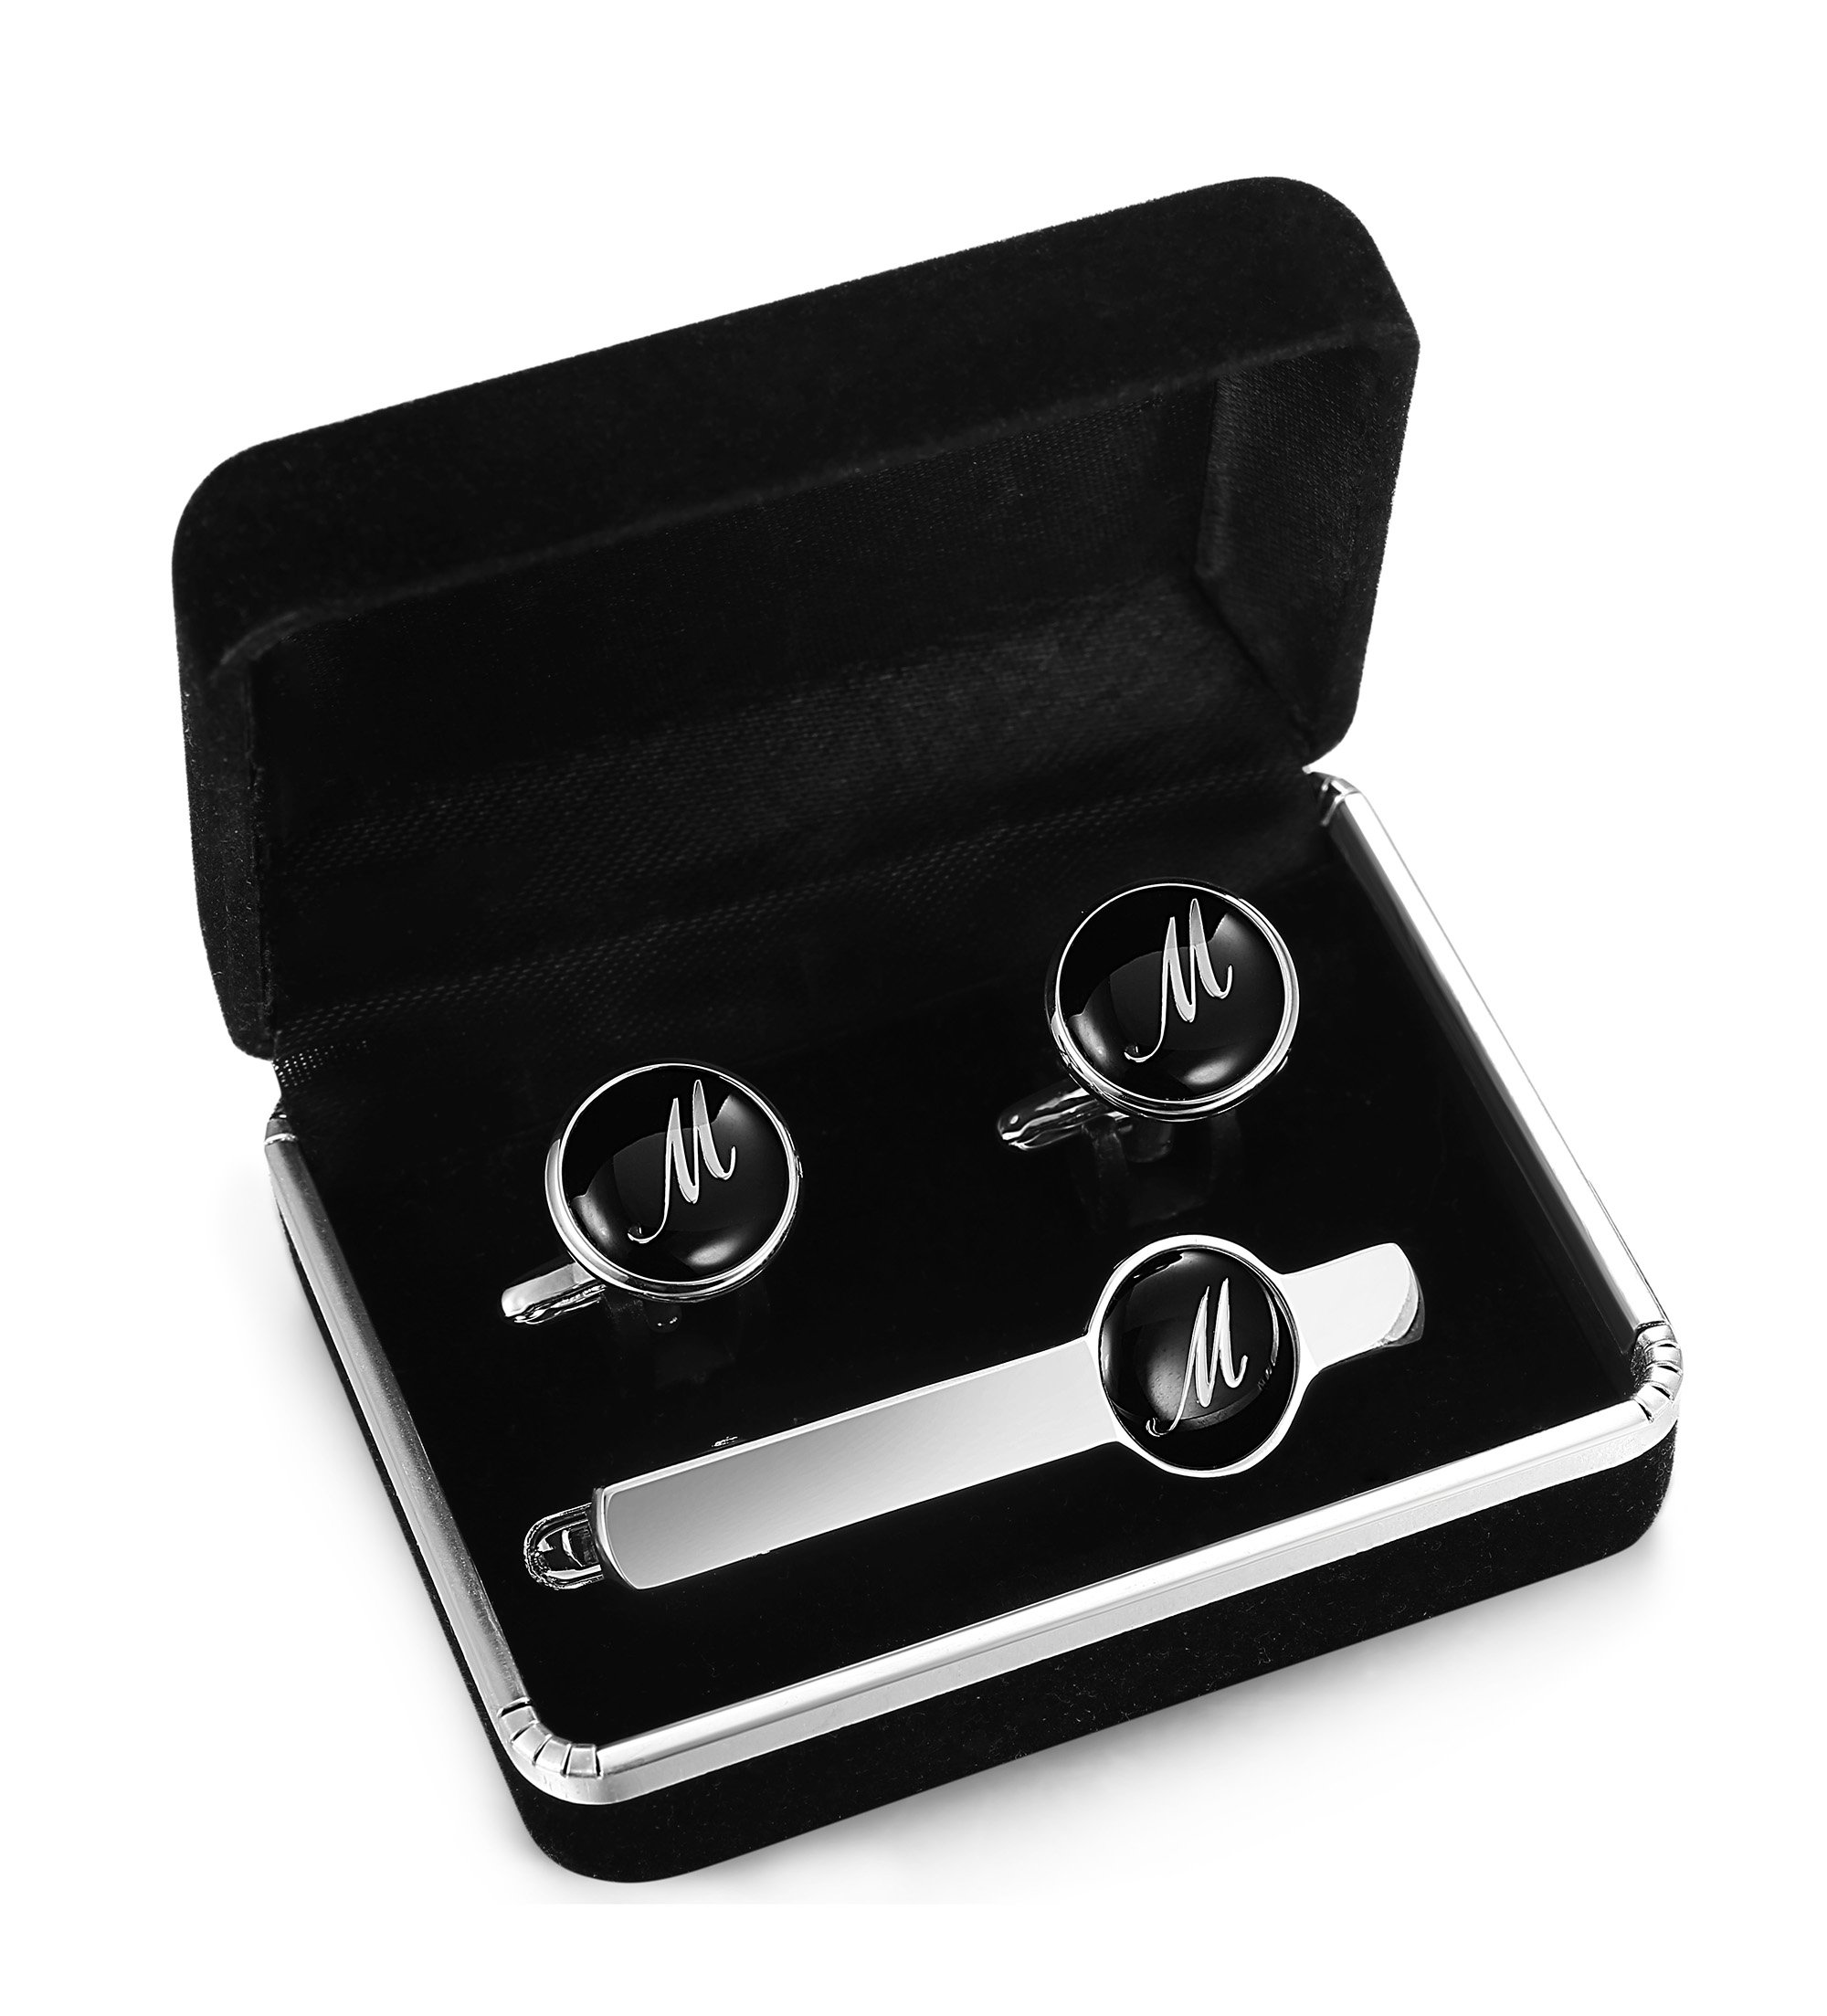 Jstyle Tie Clip and Cufflink Set For Mens Tie Bar Clips Cufflinks Shirt Wedding Business With Gift Box,Alphabet M